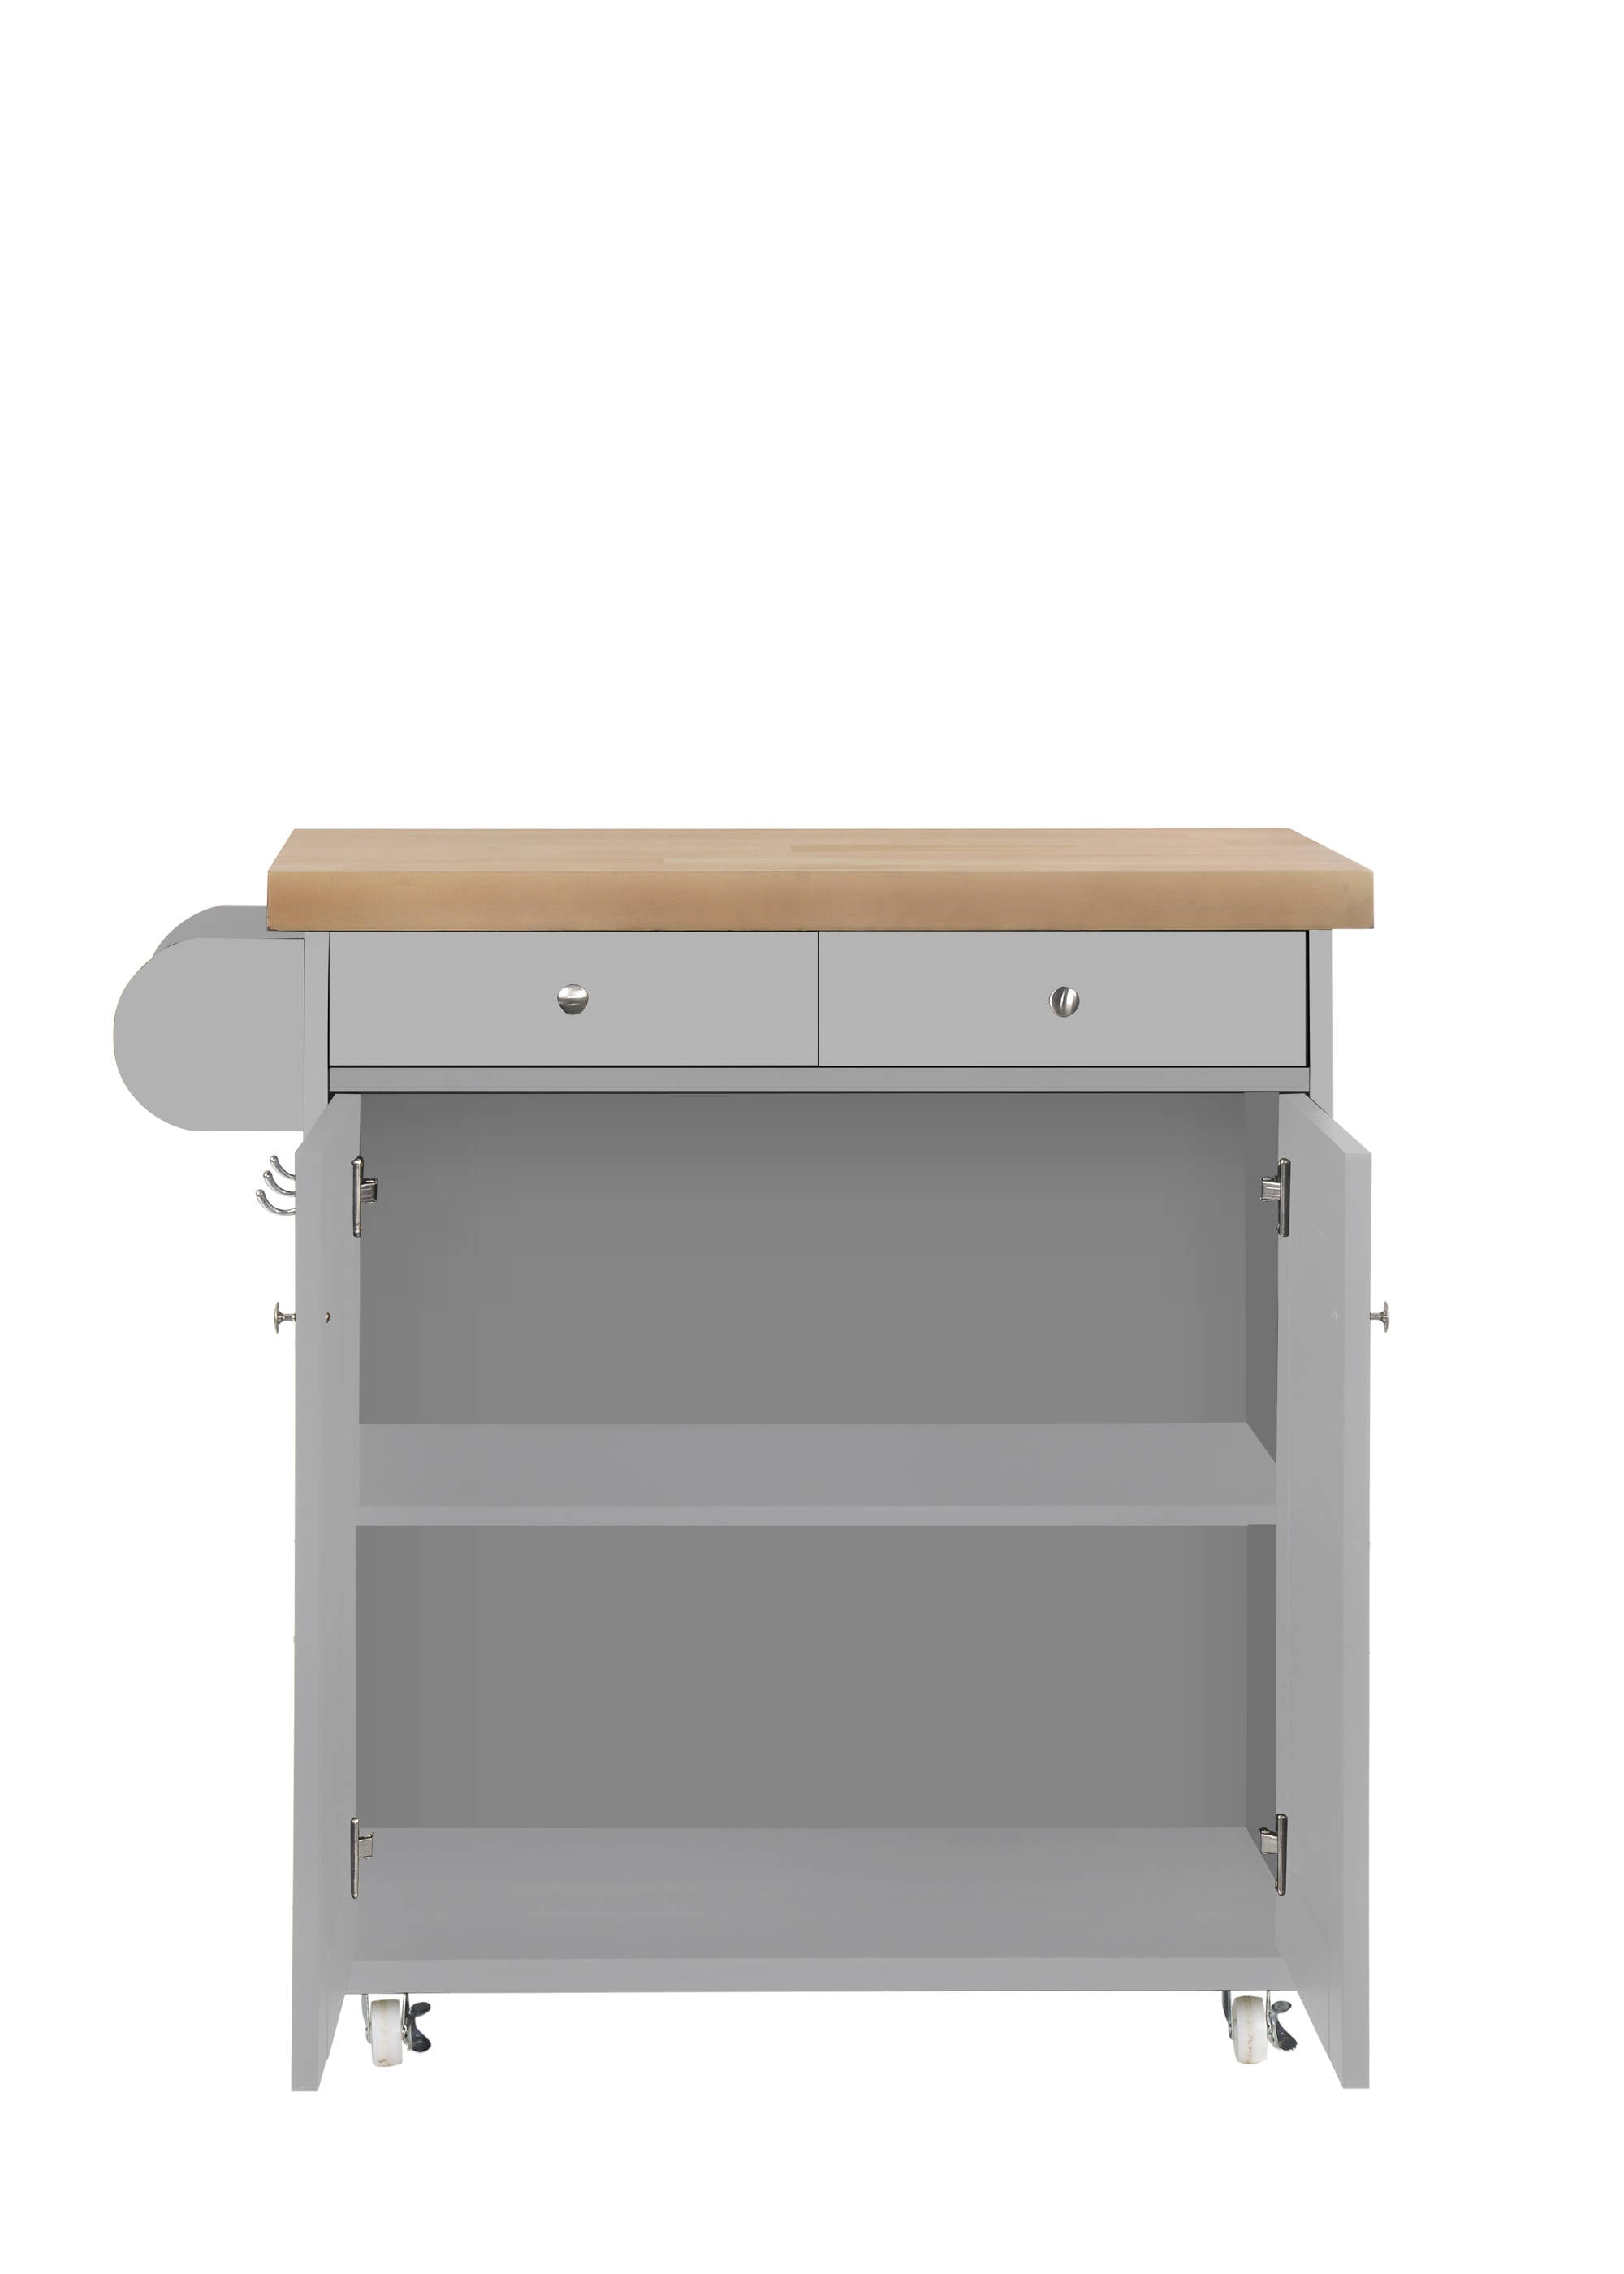 Arleta Kitchen Trolley in Grey - Ezzo